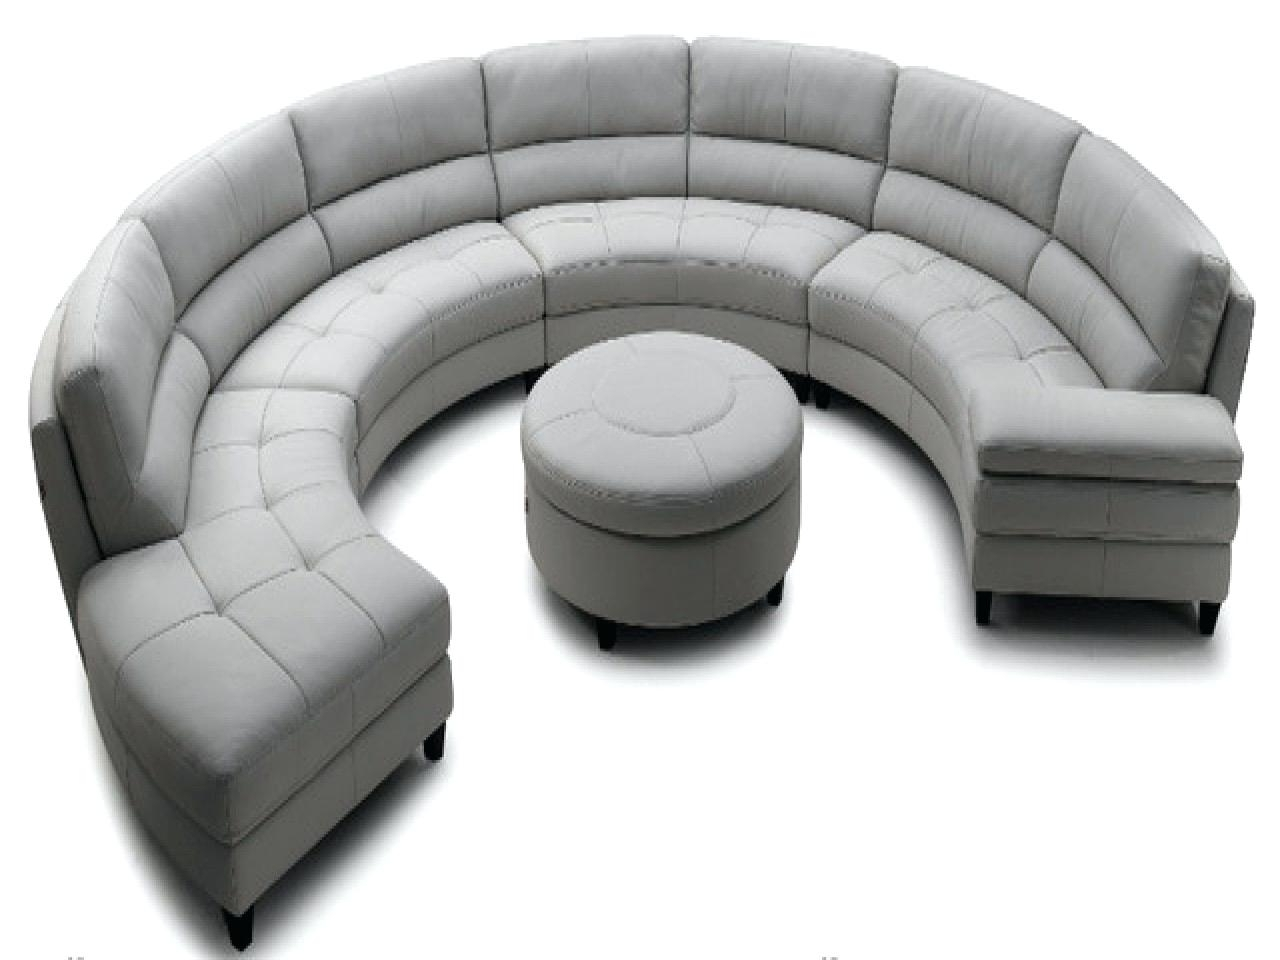 Circular Sectional Sofa Ed Modern Round Sofas Outdoor Curved With Regard To Trendy Round Sofas (View 6 of 20)